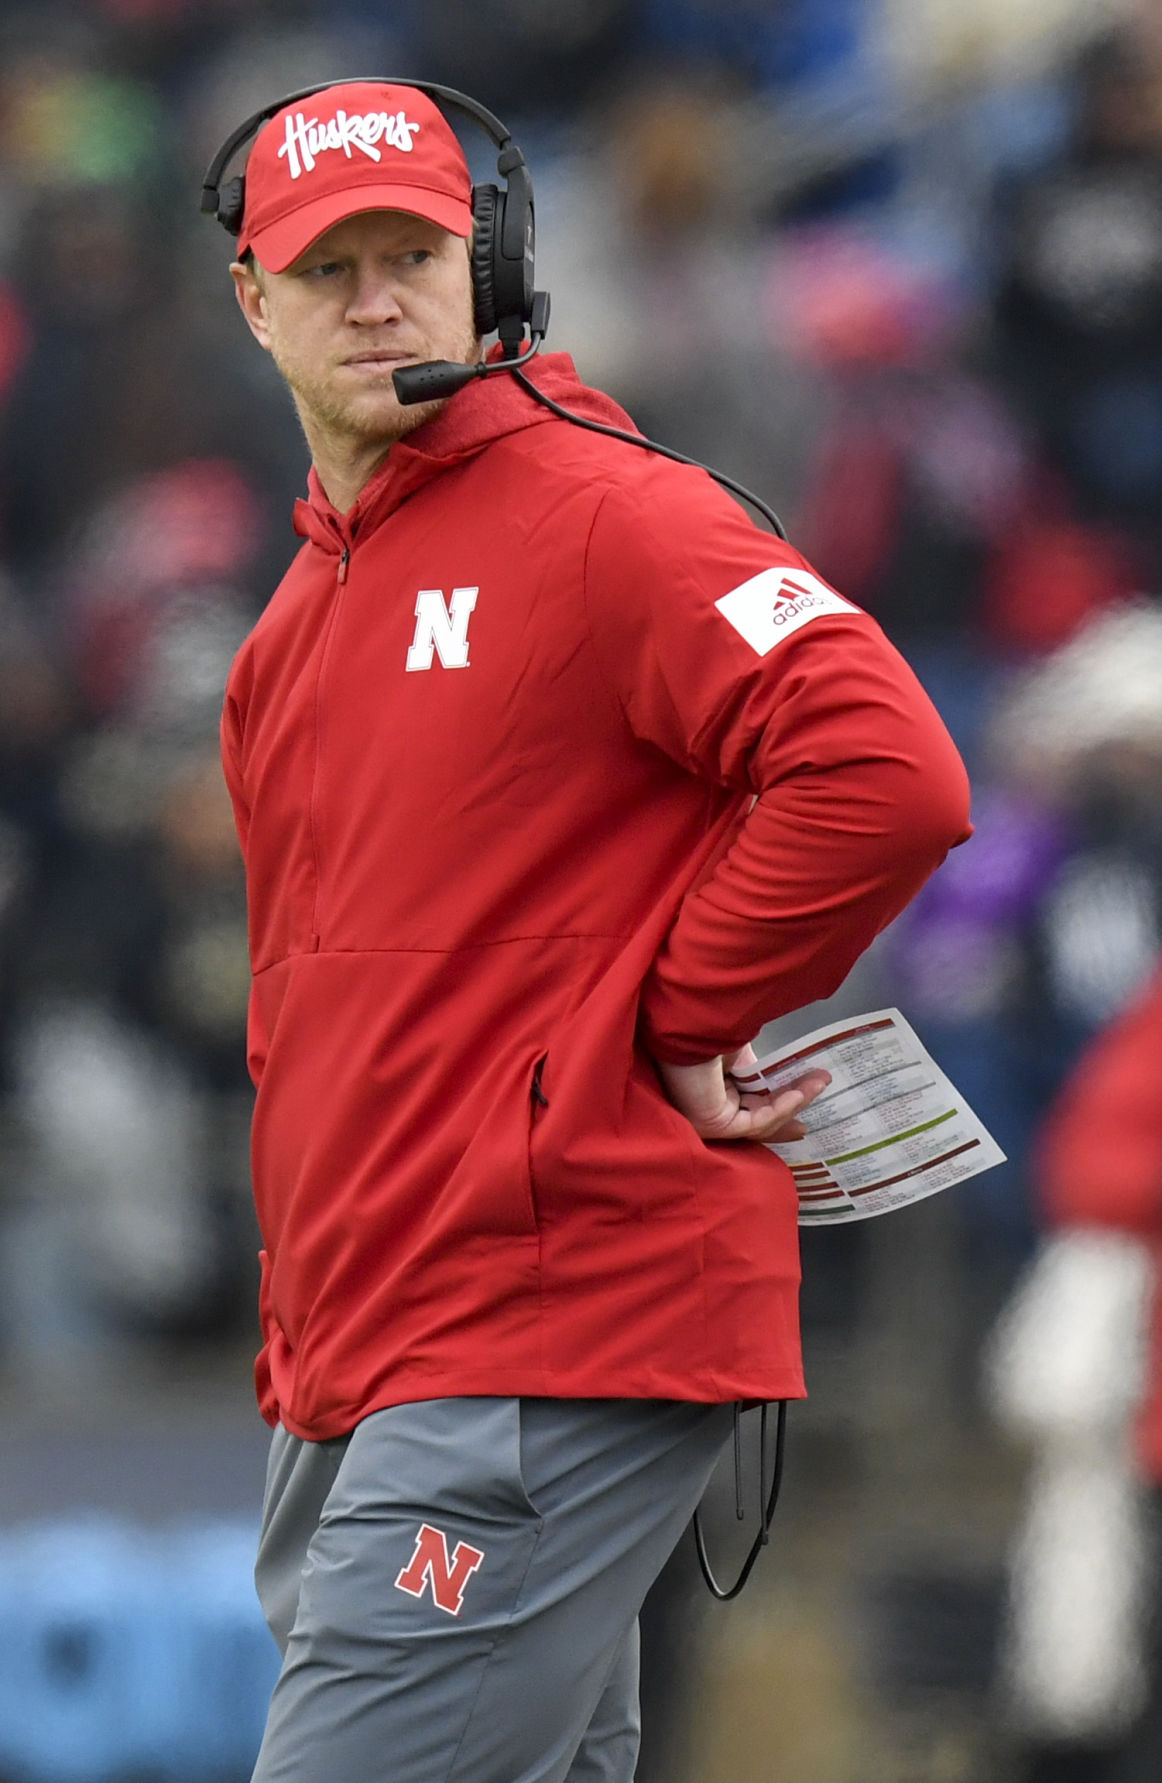 Nebraska vs. Purdue, 11.02.2019